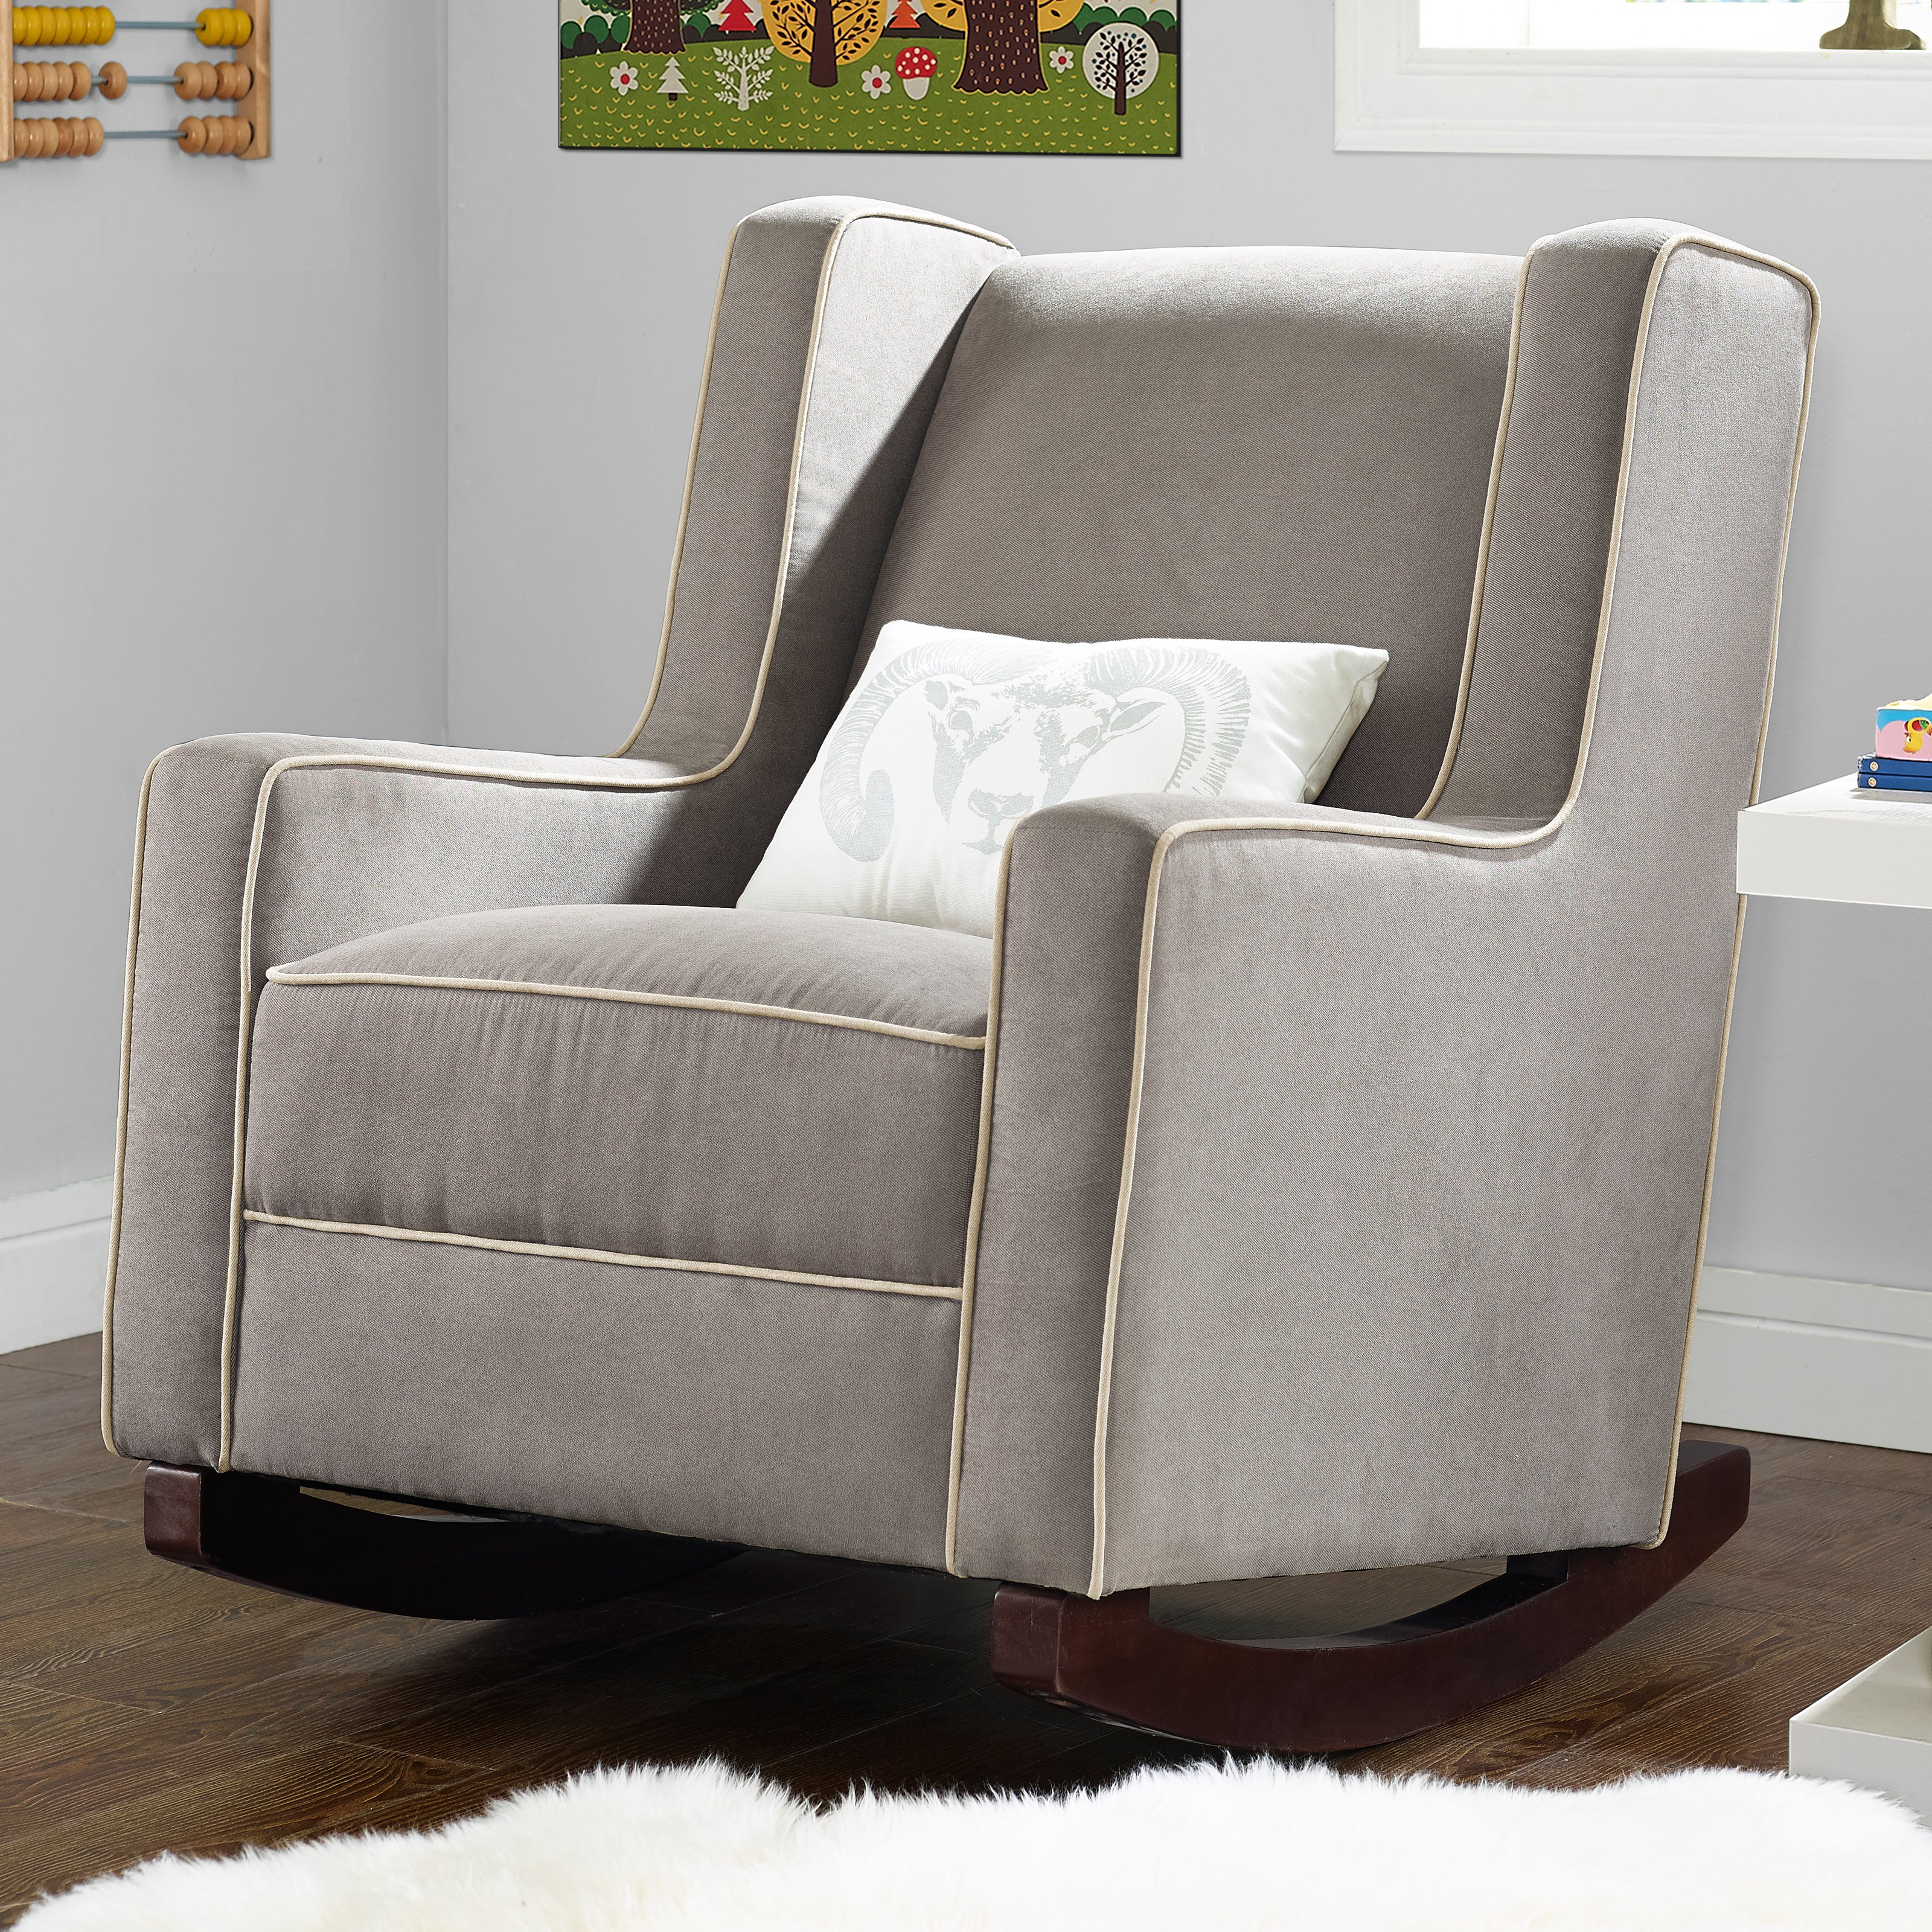 Recliner : Baby Relax Abby Rocker Luxury Glider And Recliner For Pertaining To Abbey Swivel Glider Recliners (View 4 of 25)